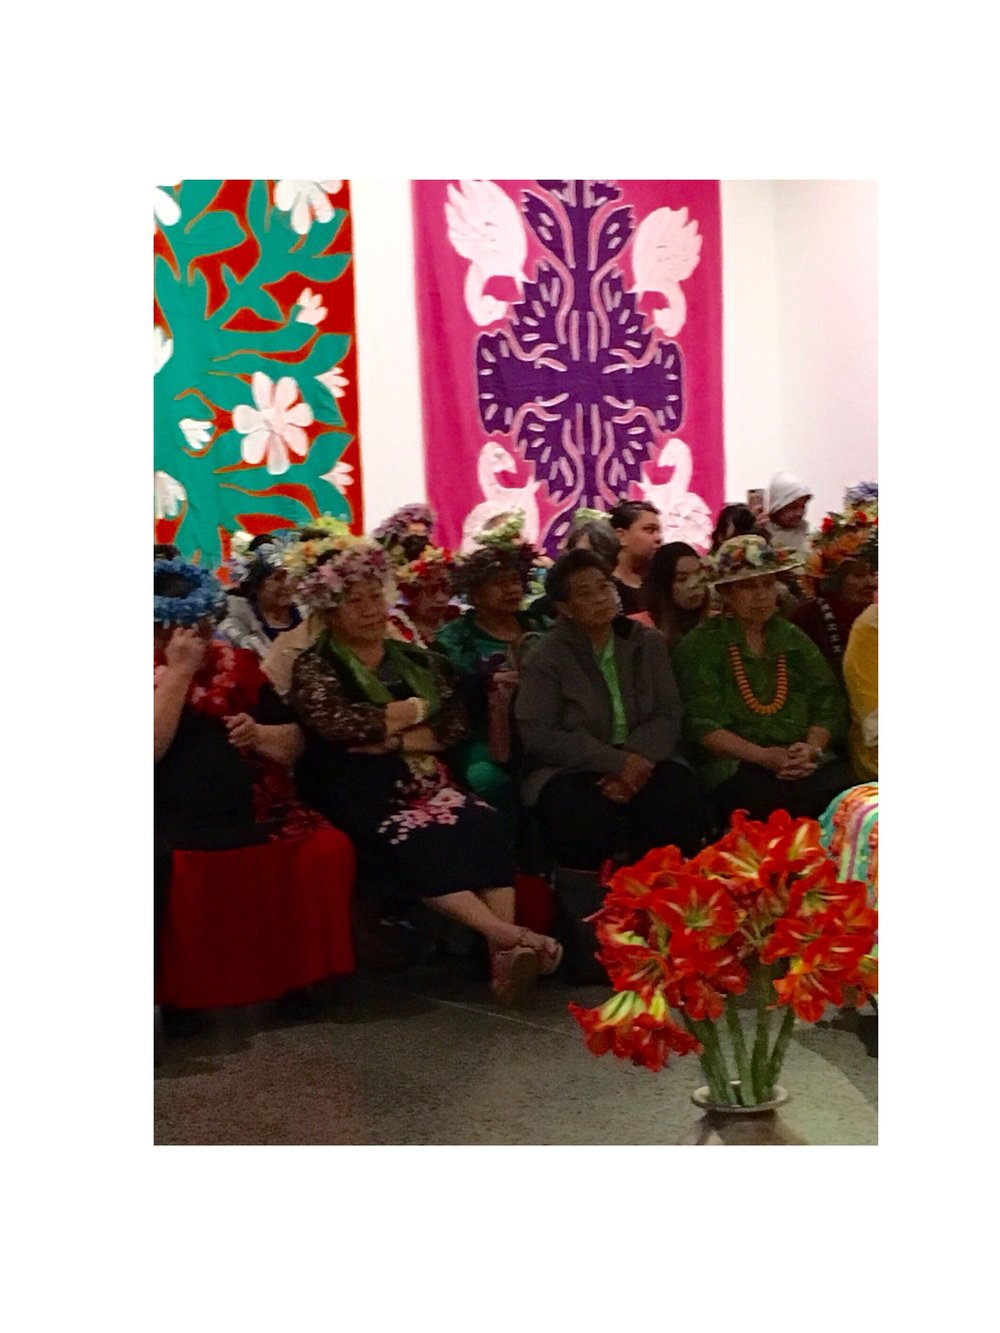 Attendees at the Mangere Arts Centre Exhibition Opening